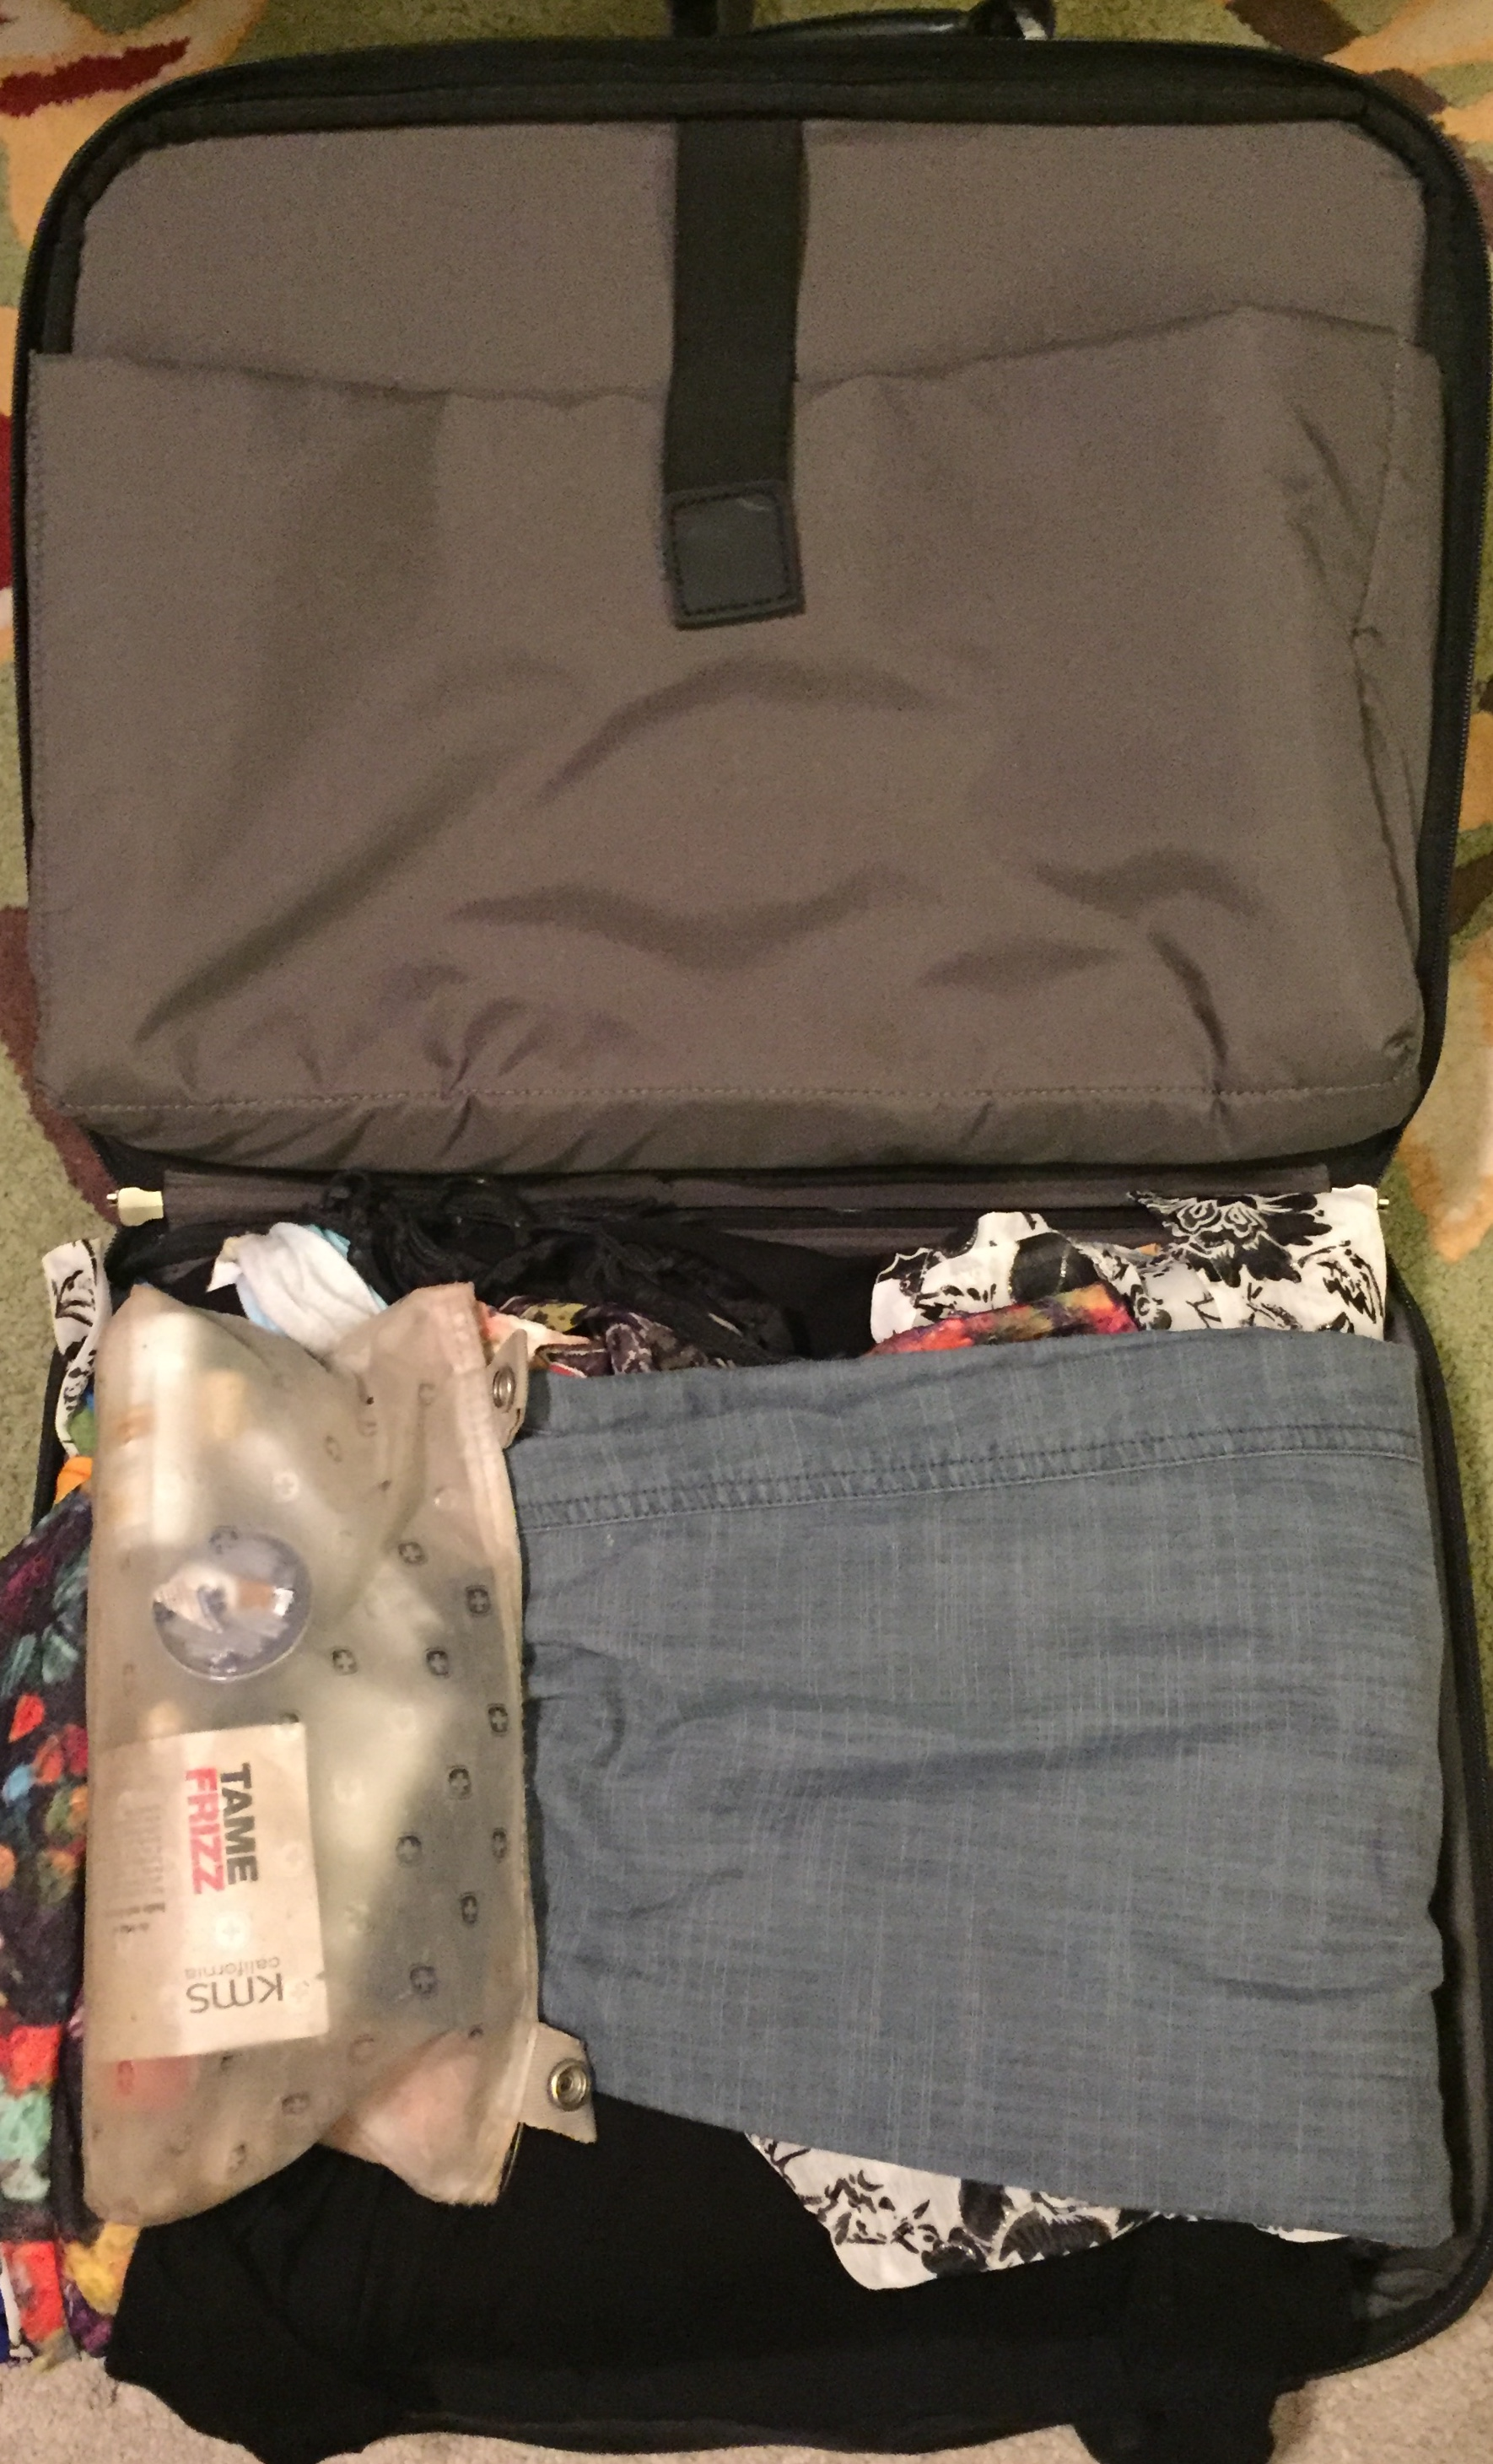 Image 2.  The suitcase with all the clothes folded over into one bundle. (My makeup bag is on top of the clothes however, I don't put this in until the clothes are placed into a plastic bag.)